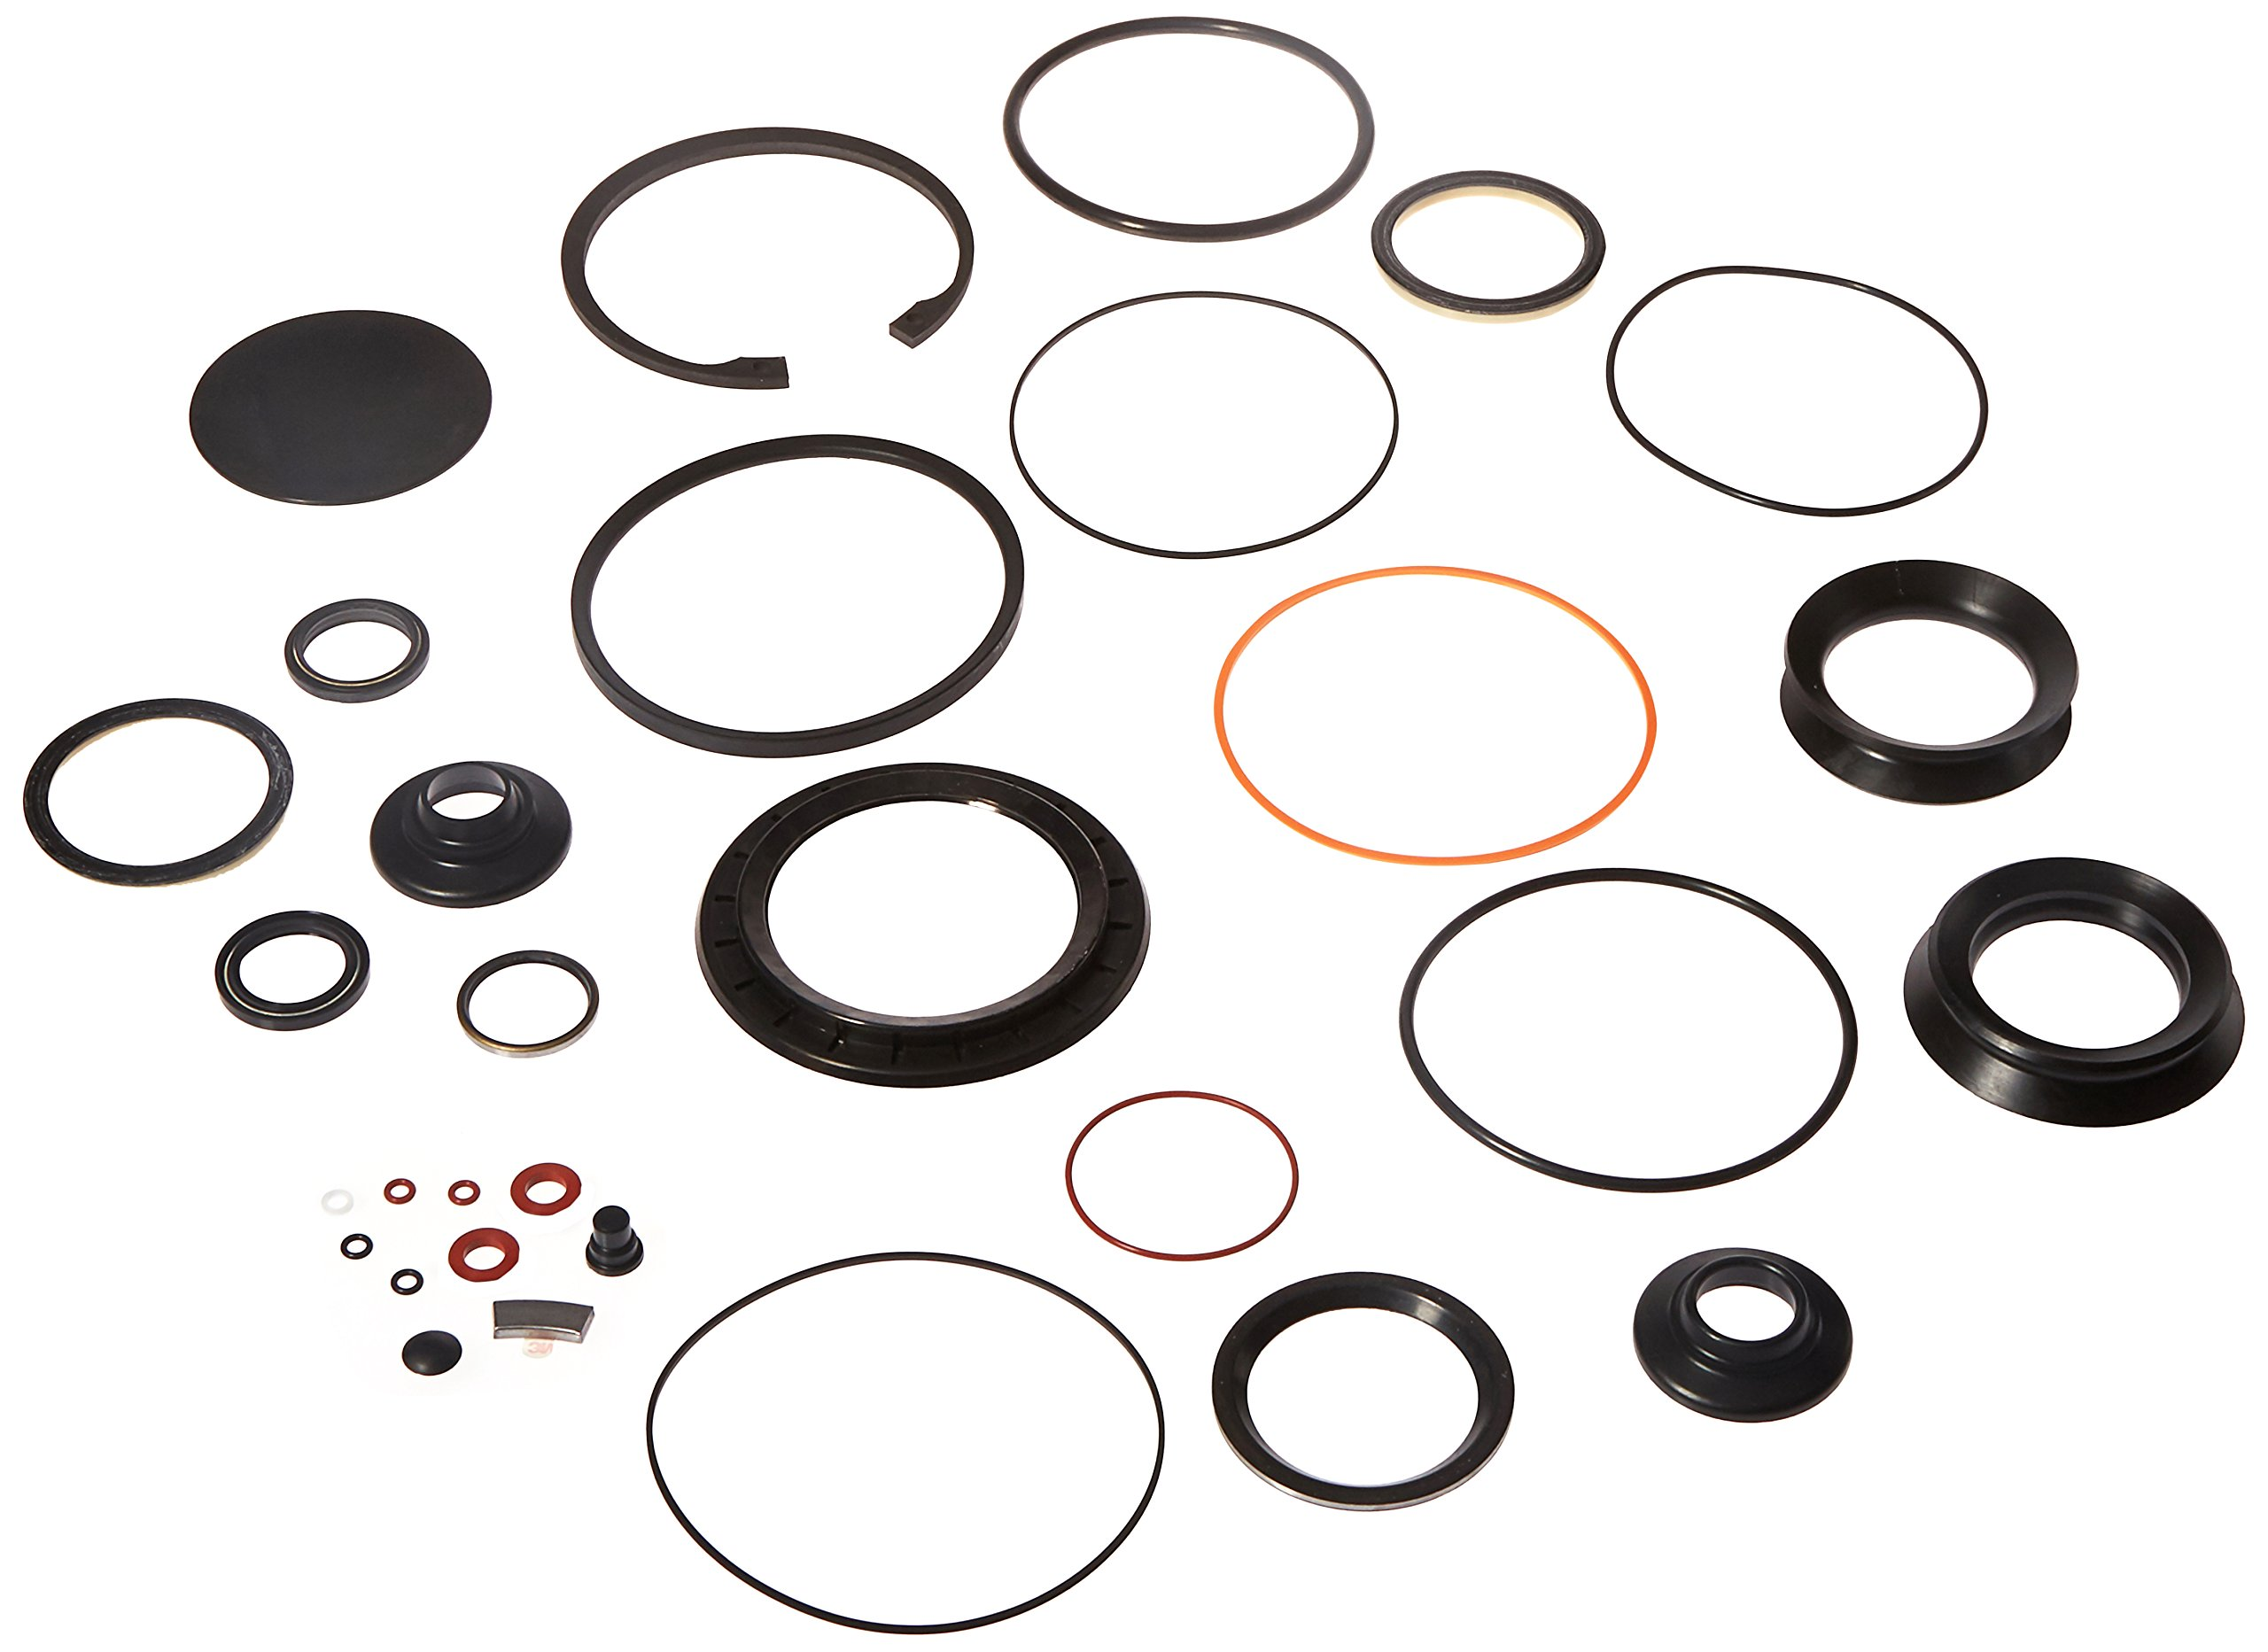 R. H. Sheppard 5545751 Combined Kit with Snap Ring and L-Seal (5544861, 5545431, 5544981)